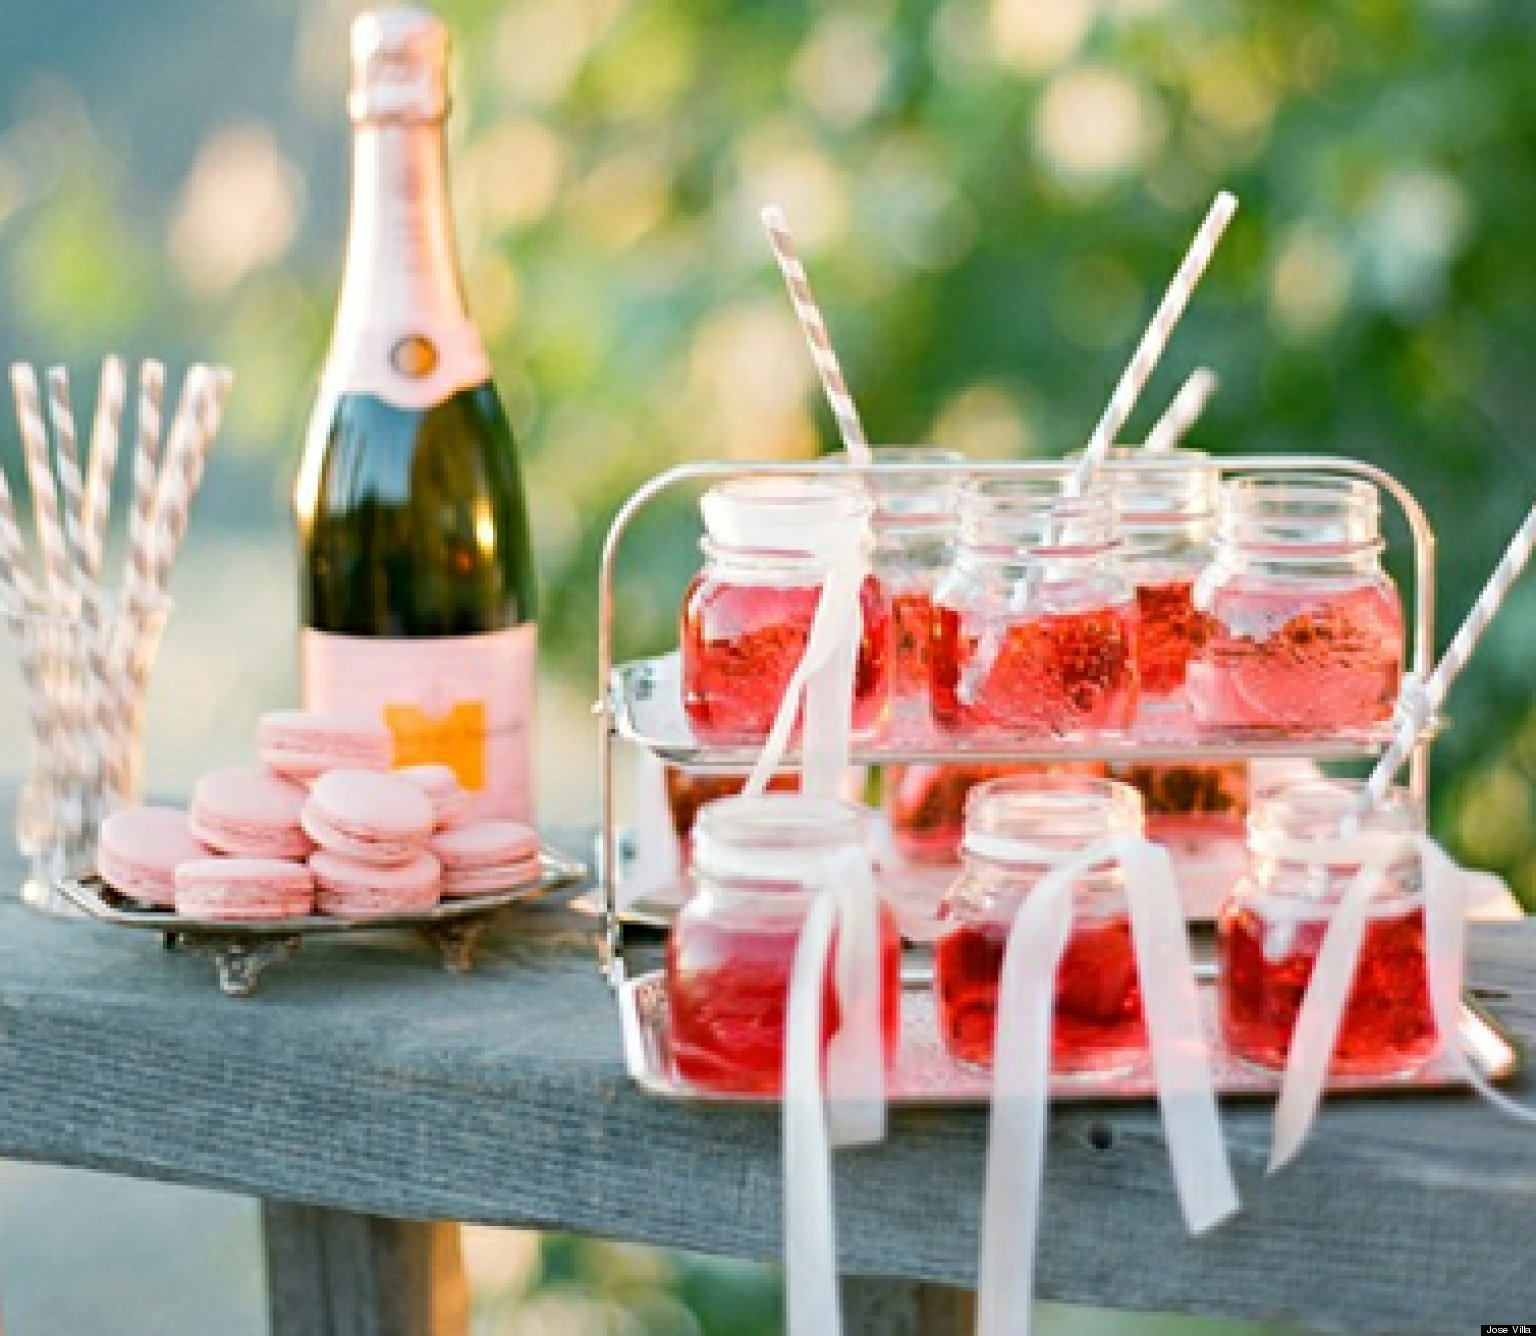 Wedding Registry Ideas For Couples Living Together: 4 Ways To Modernize The Traditional Wedding Shower